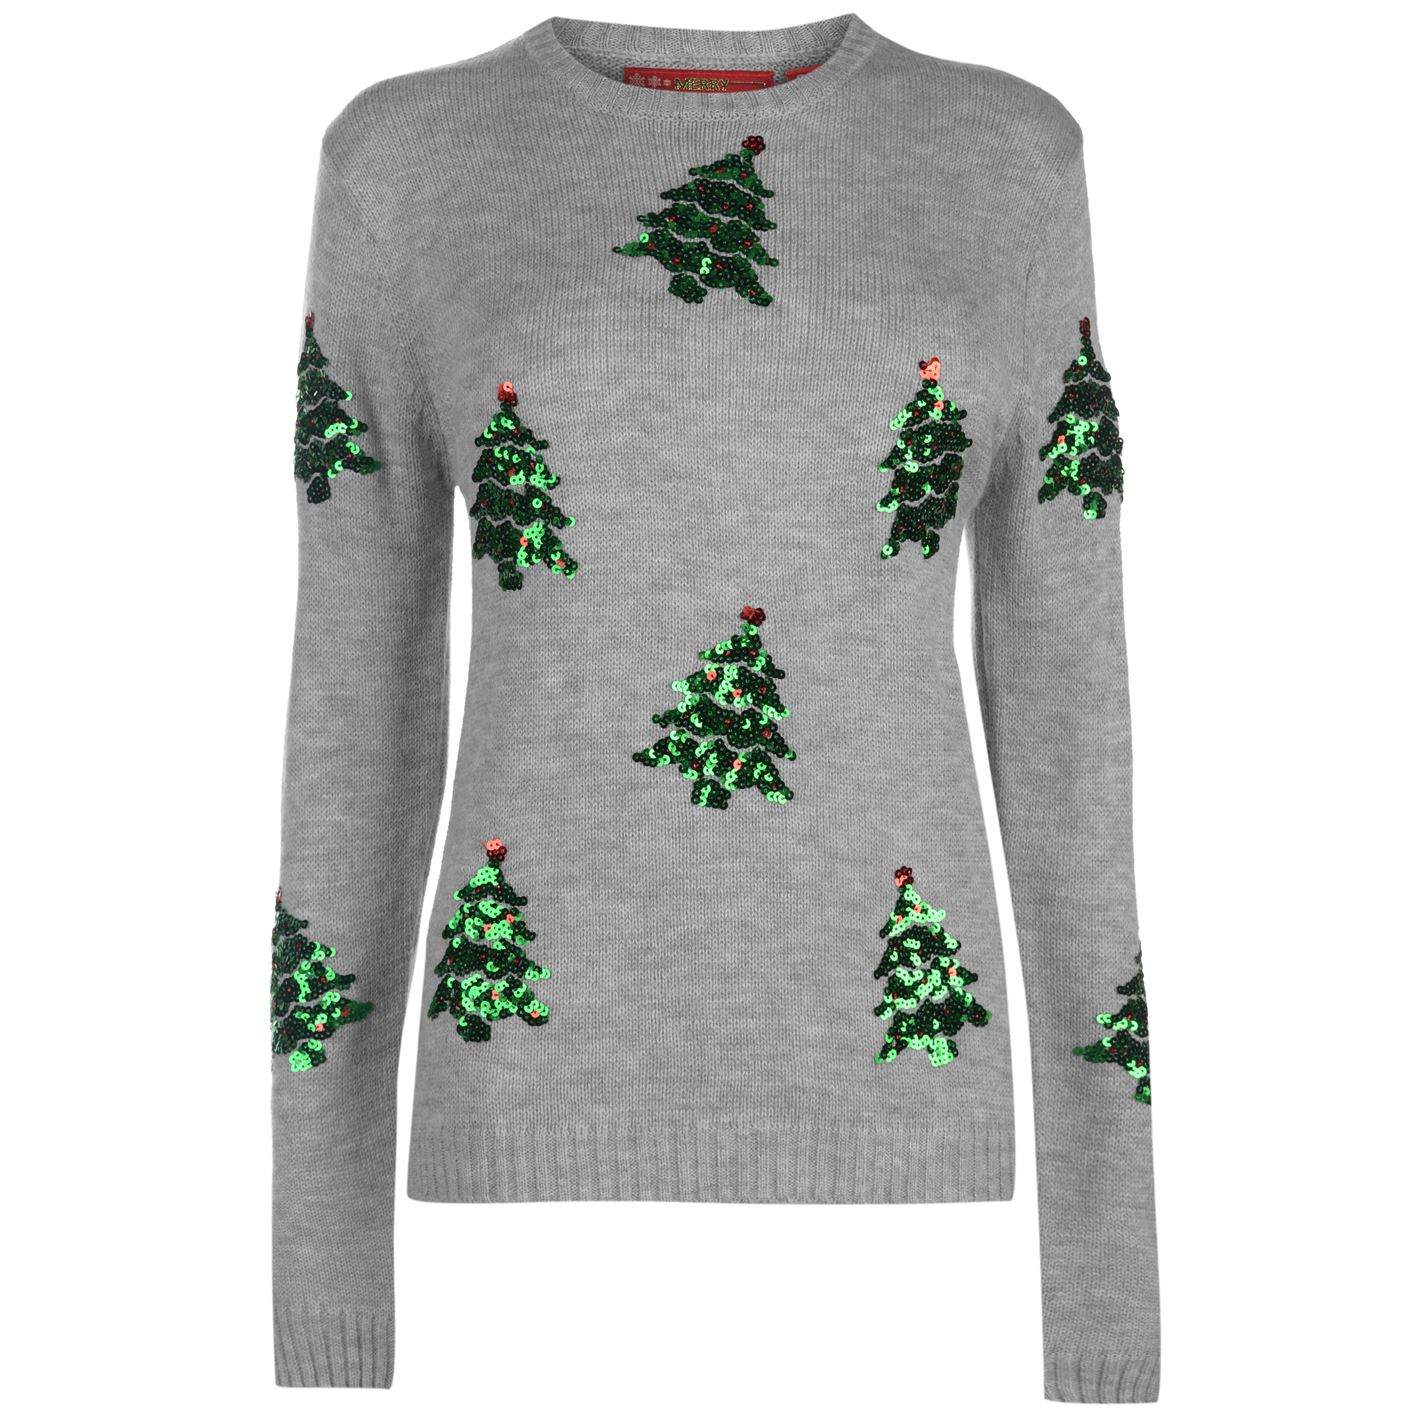 ZZ Top /'Eliminator/' Knitted Jumper NEW xmas christmas